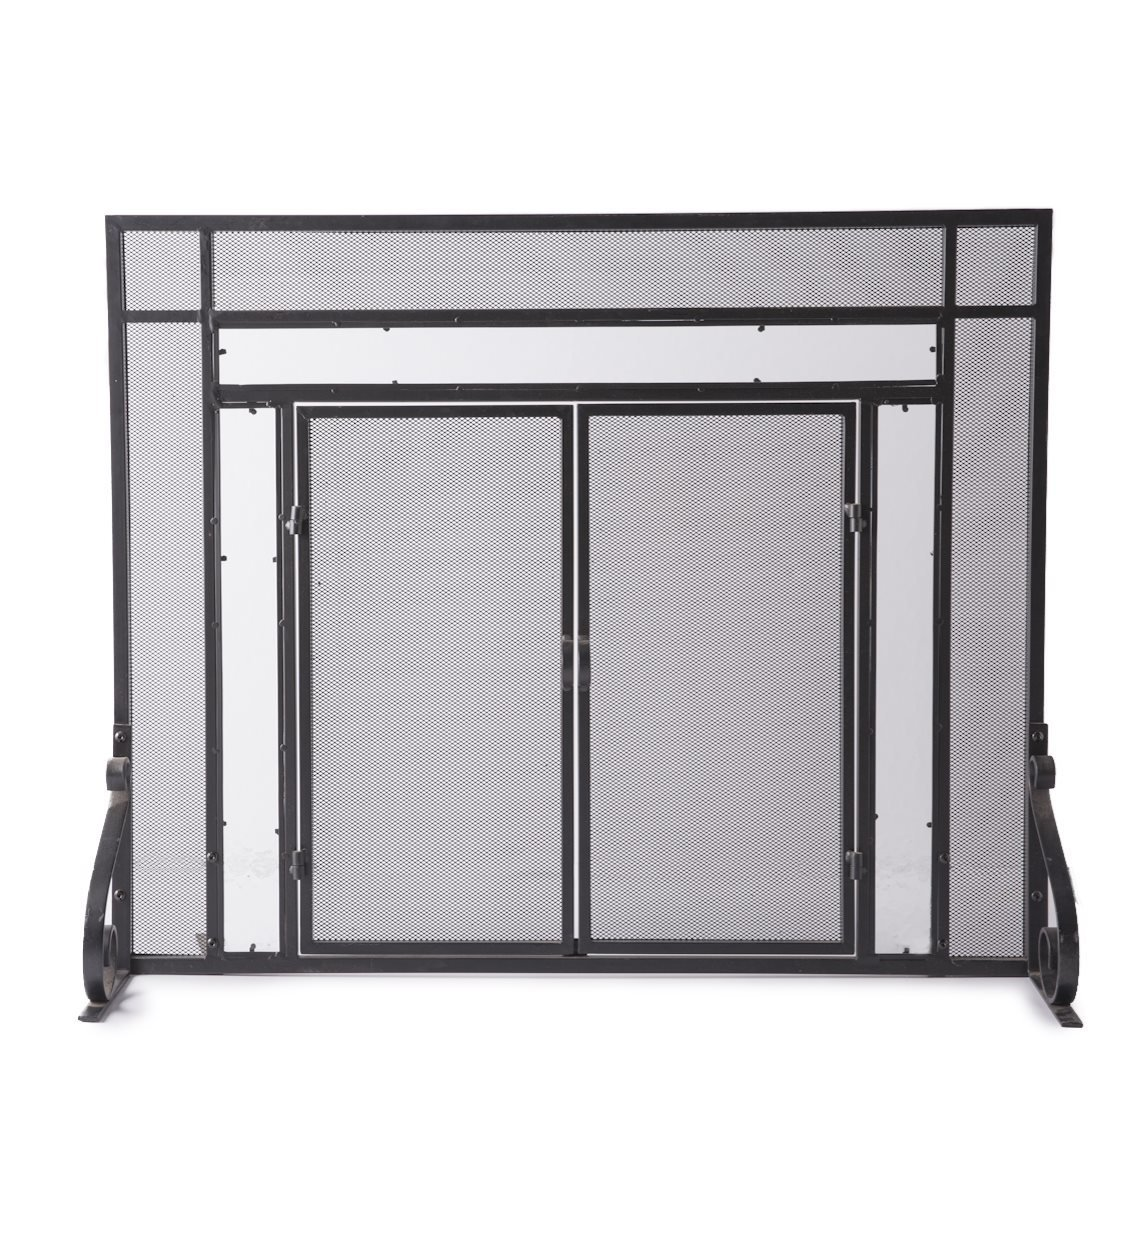 Plow & Hearth Small Fireplace Screen with Hinged Magnetic Doors, Tubular Steel Frame, Tempered Glass Accents, Metal Mesh, Free Standing Spark Guard, Decorative Design, Matte Black Finish, 38 W x 31 H by Plow & Hearth